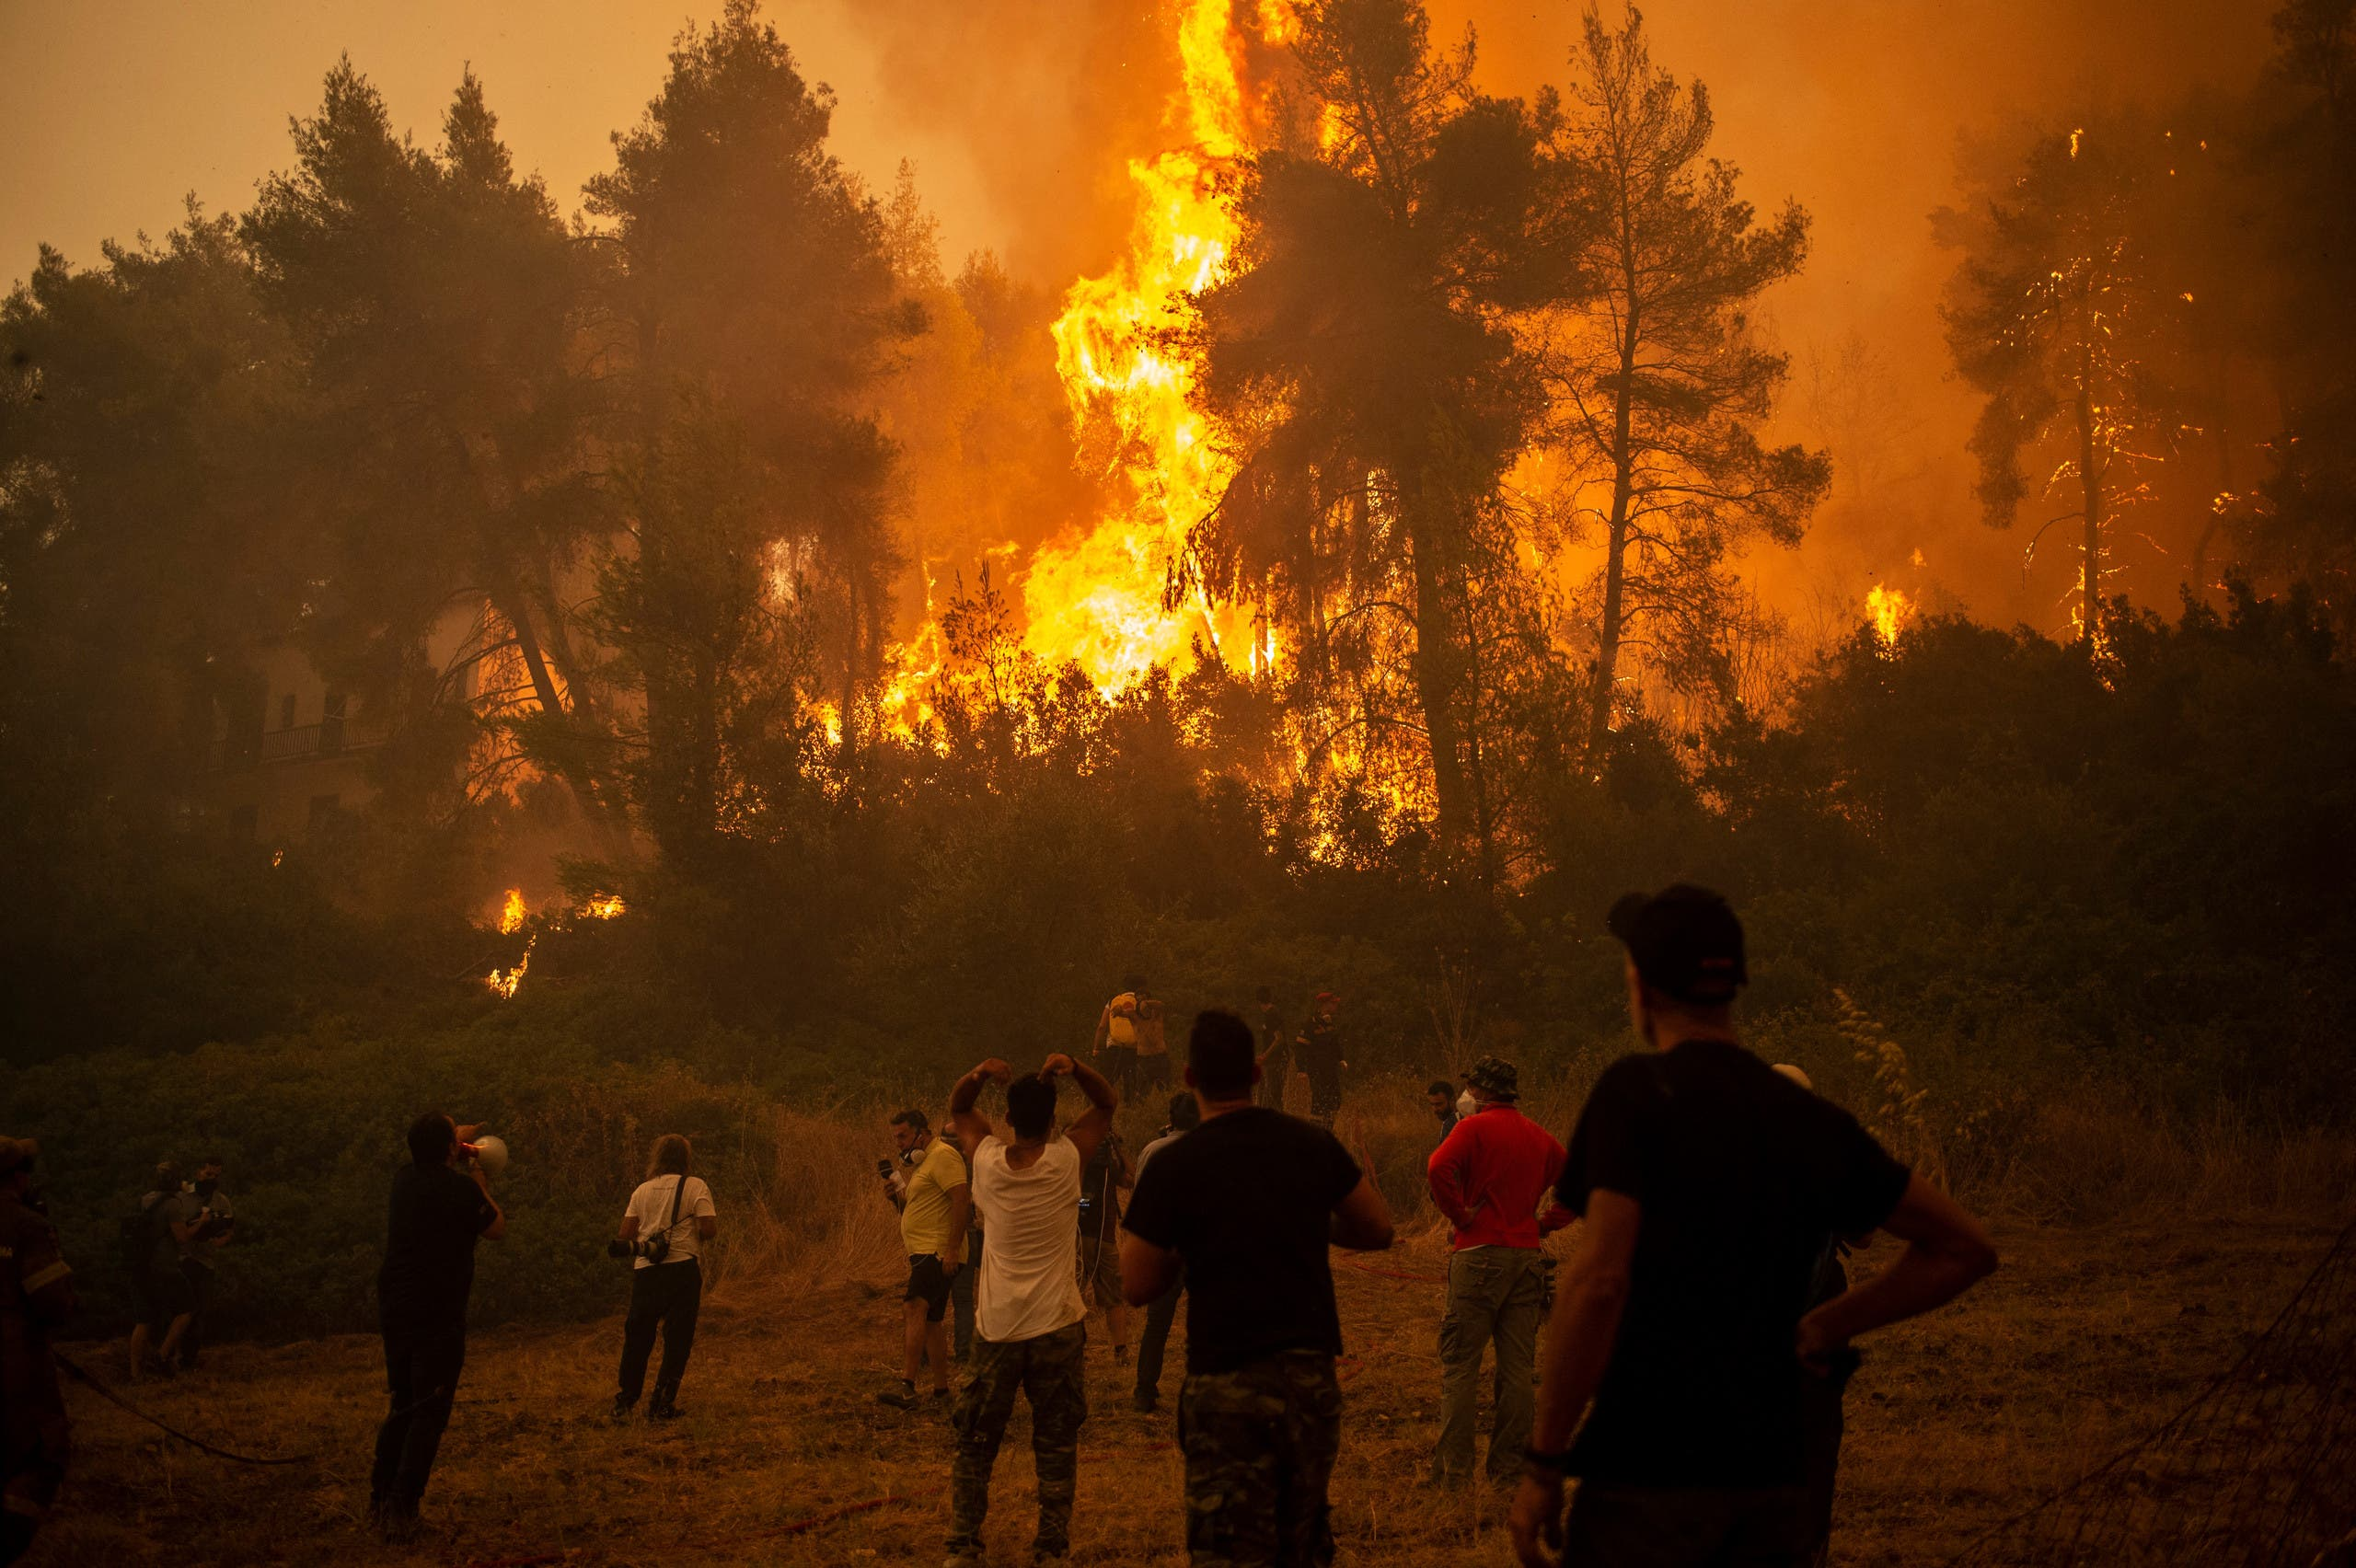 From the fires of Greece